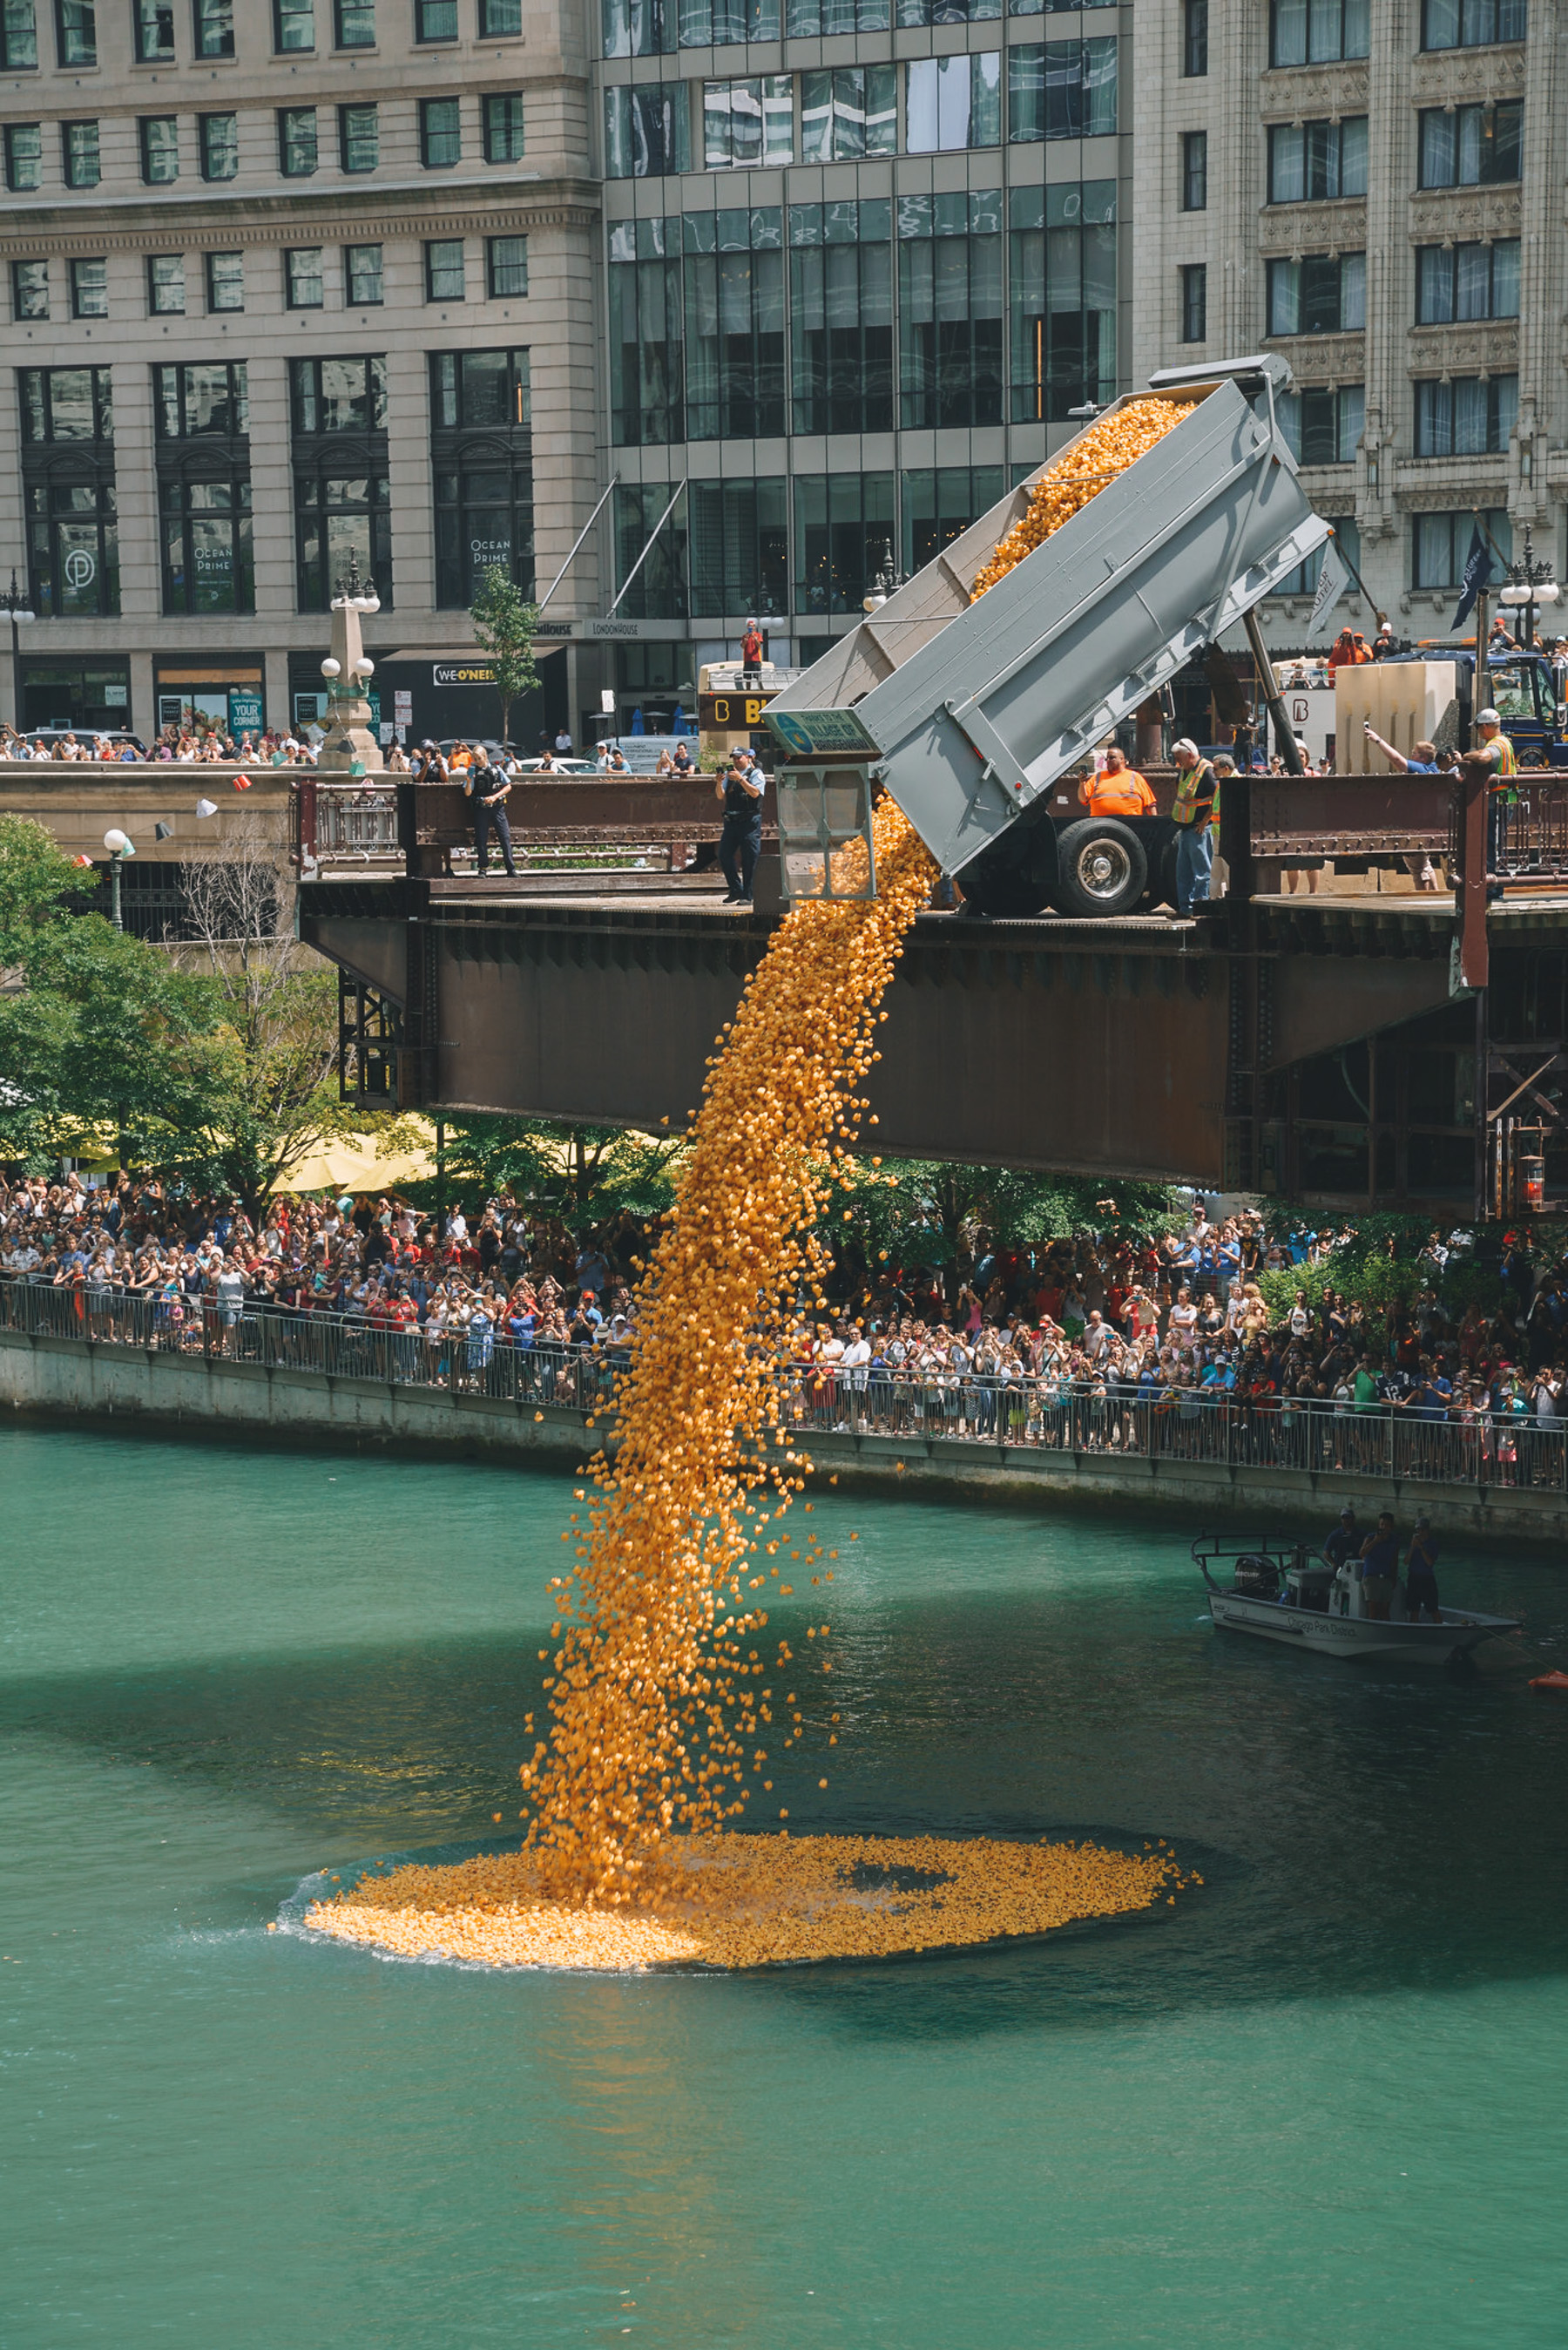 The beginning of the Ducky Derby Fundraiser, thousands of rubber ducks are poured into the river